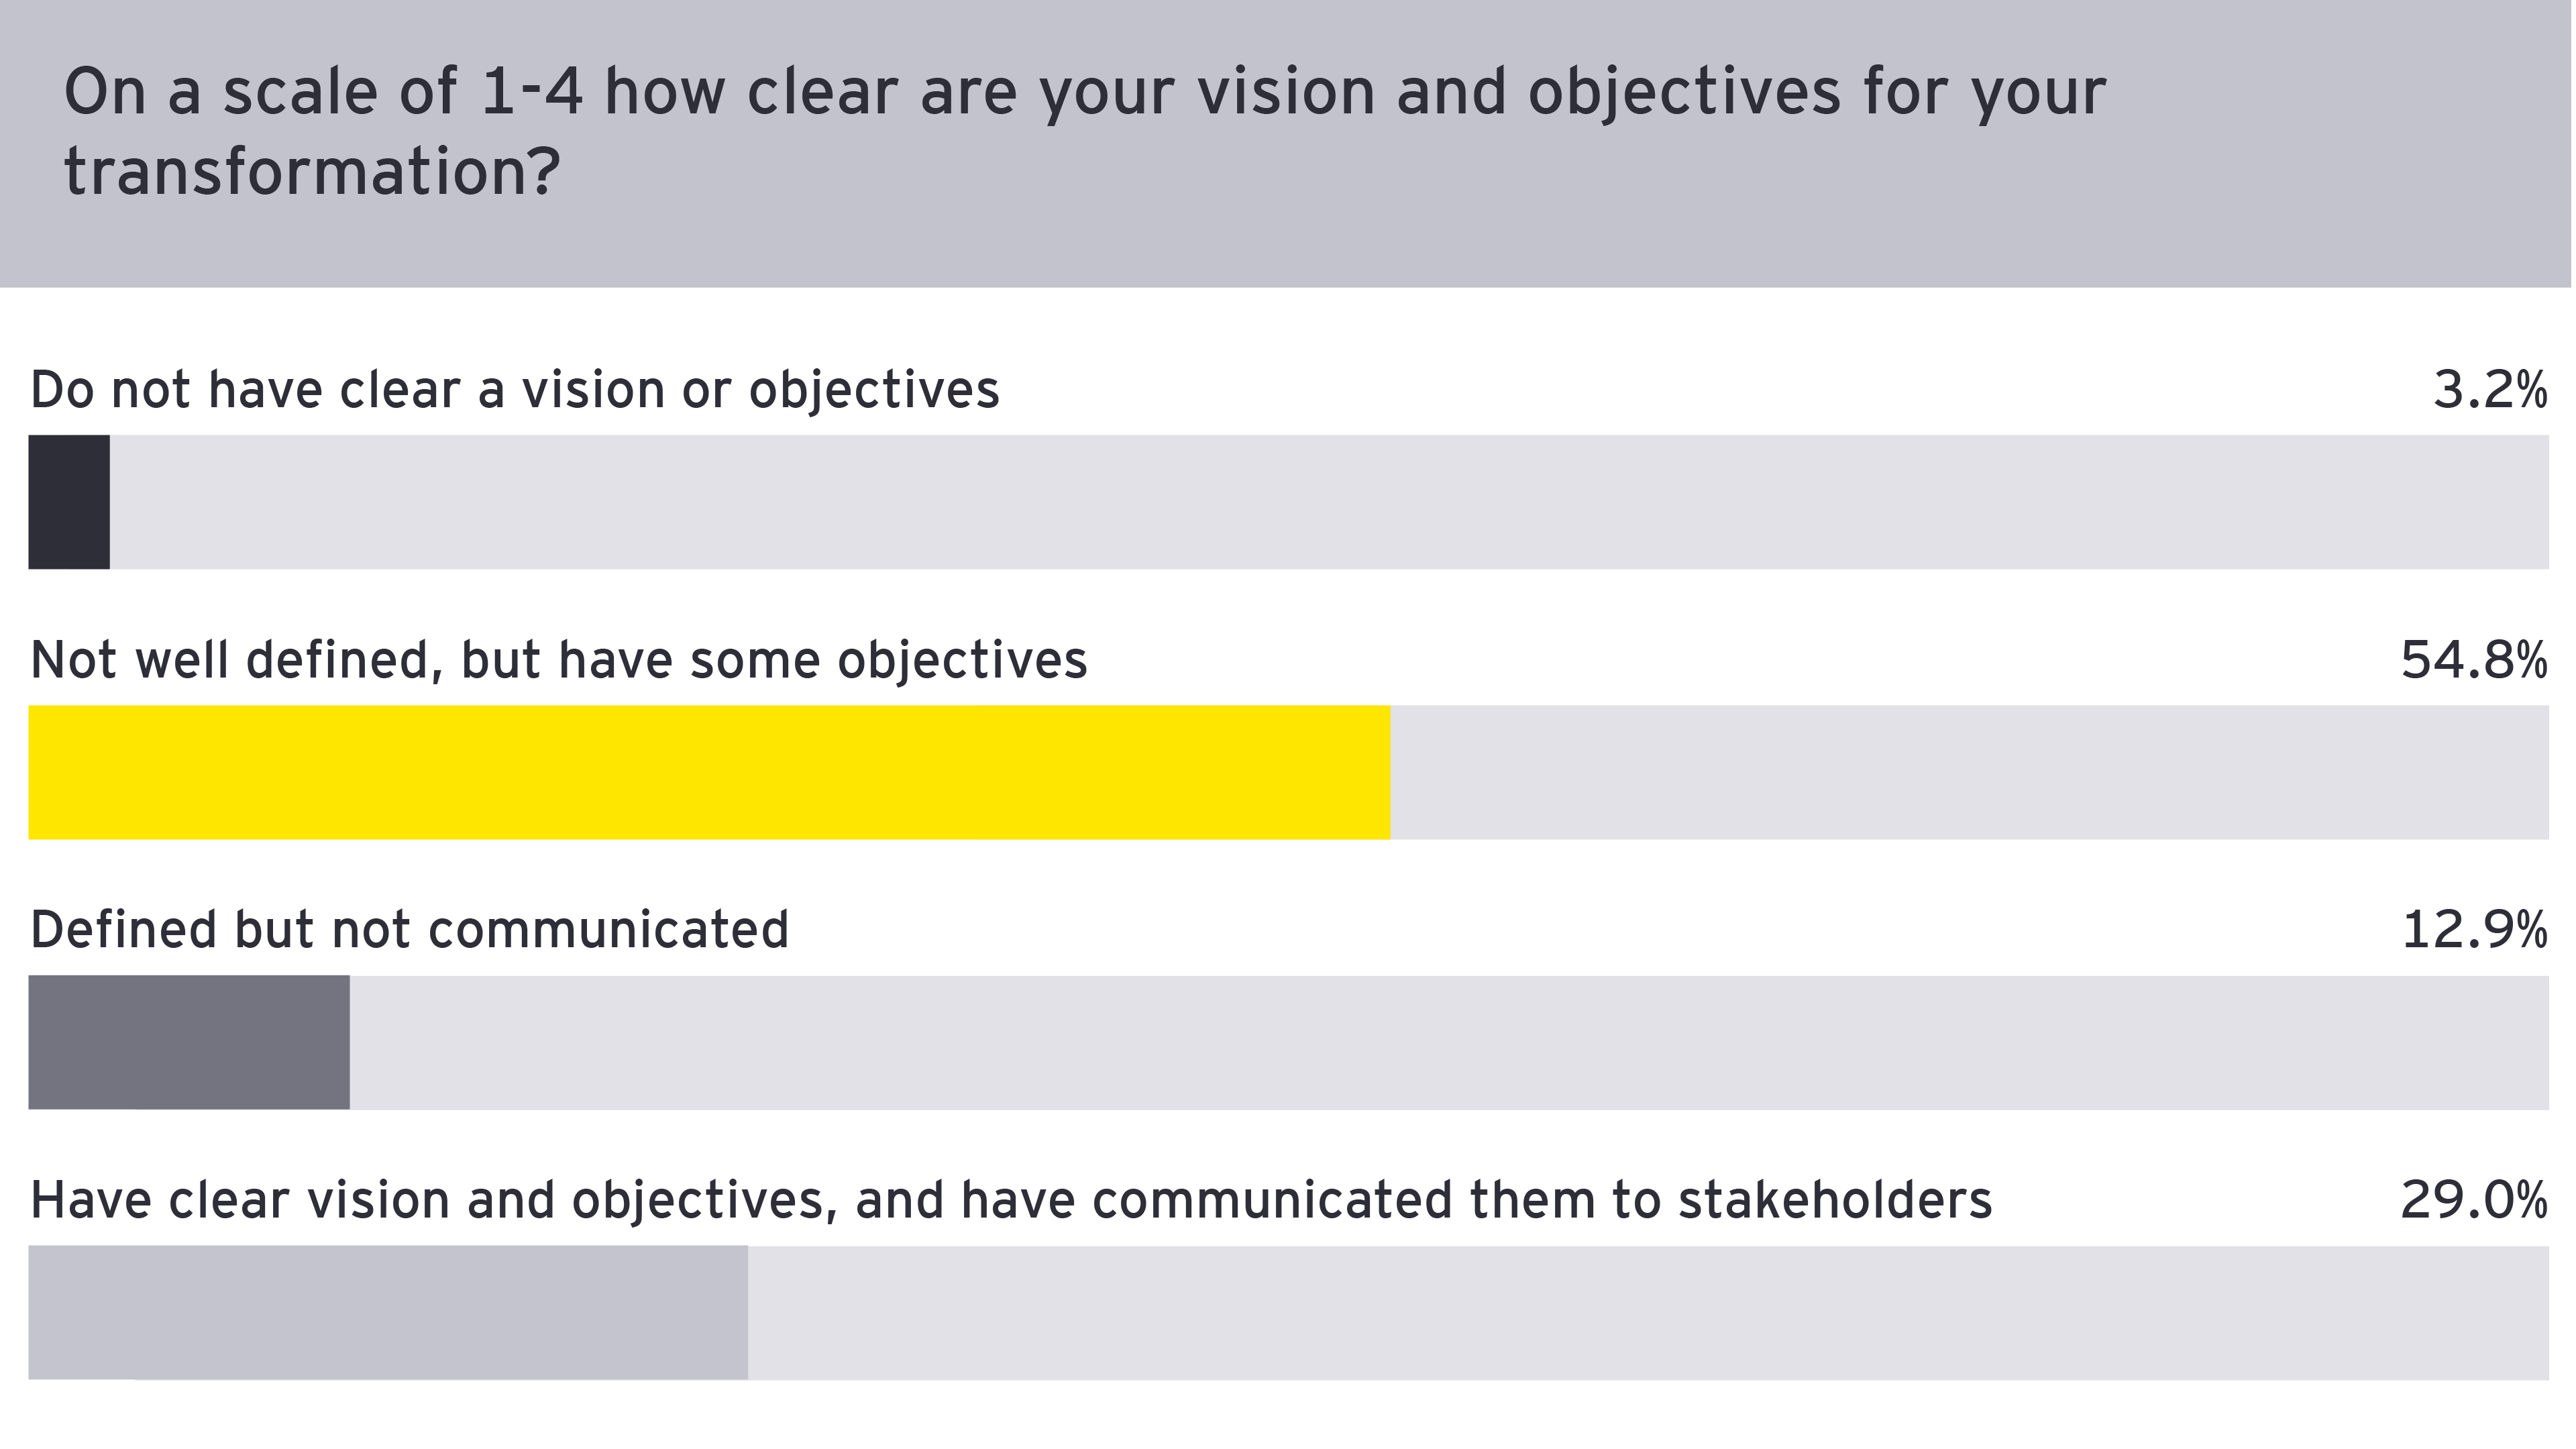 Figure 2: How clear are your vision and objectives